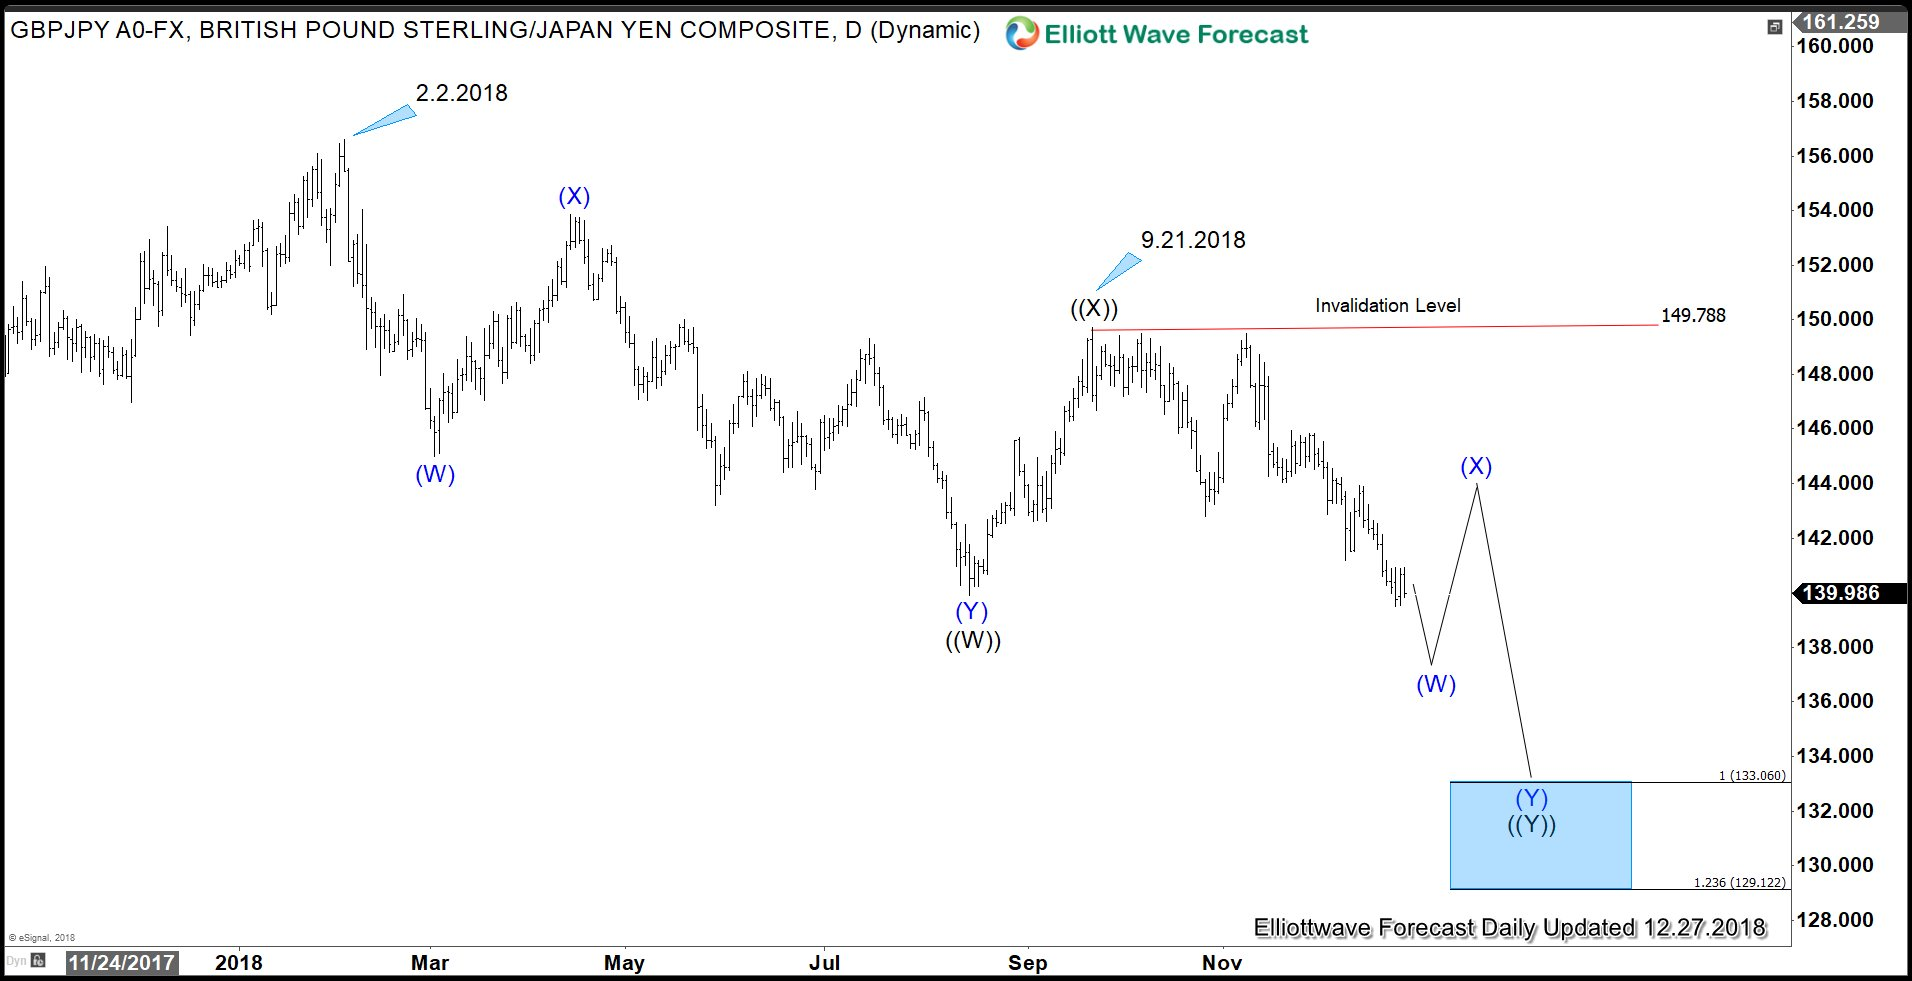 Japanese Yen should outperform against Pound Sterling in 2019